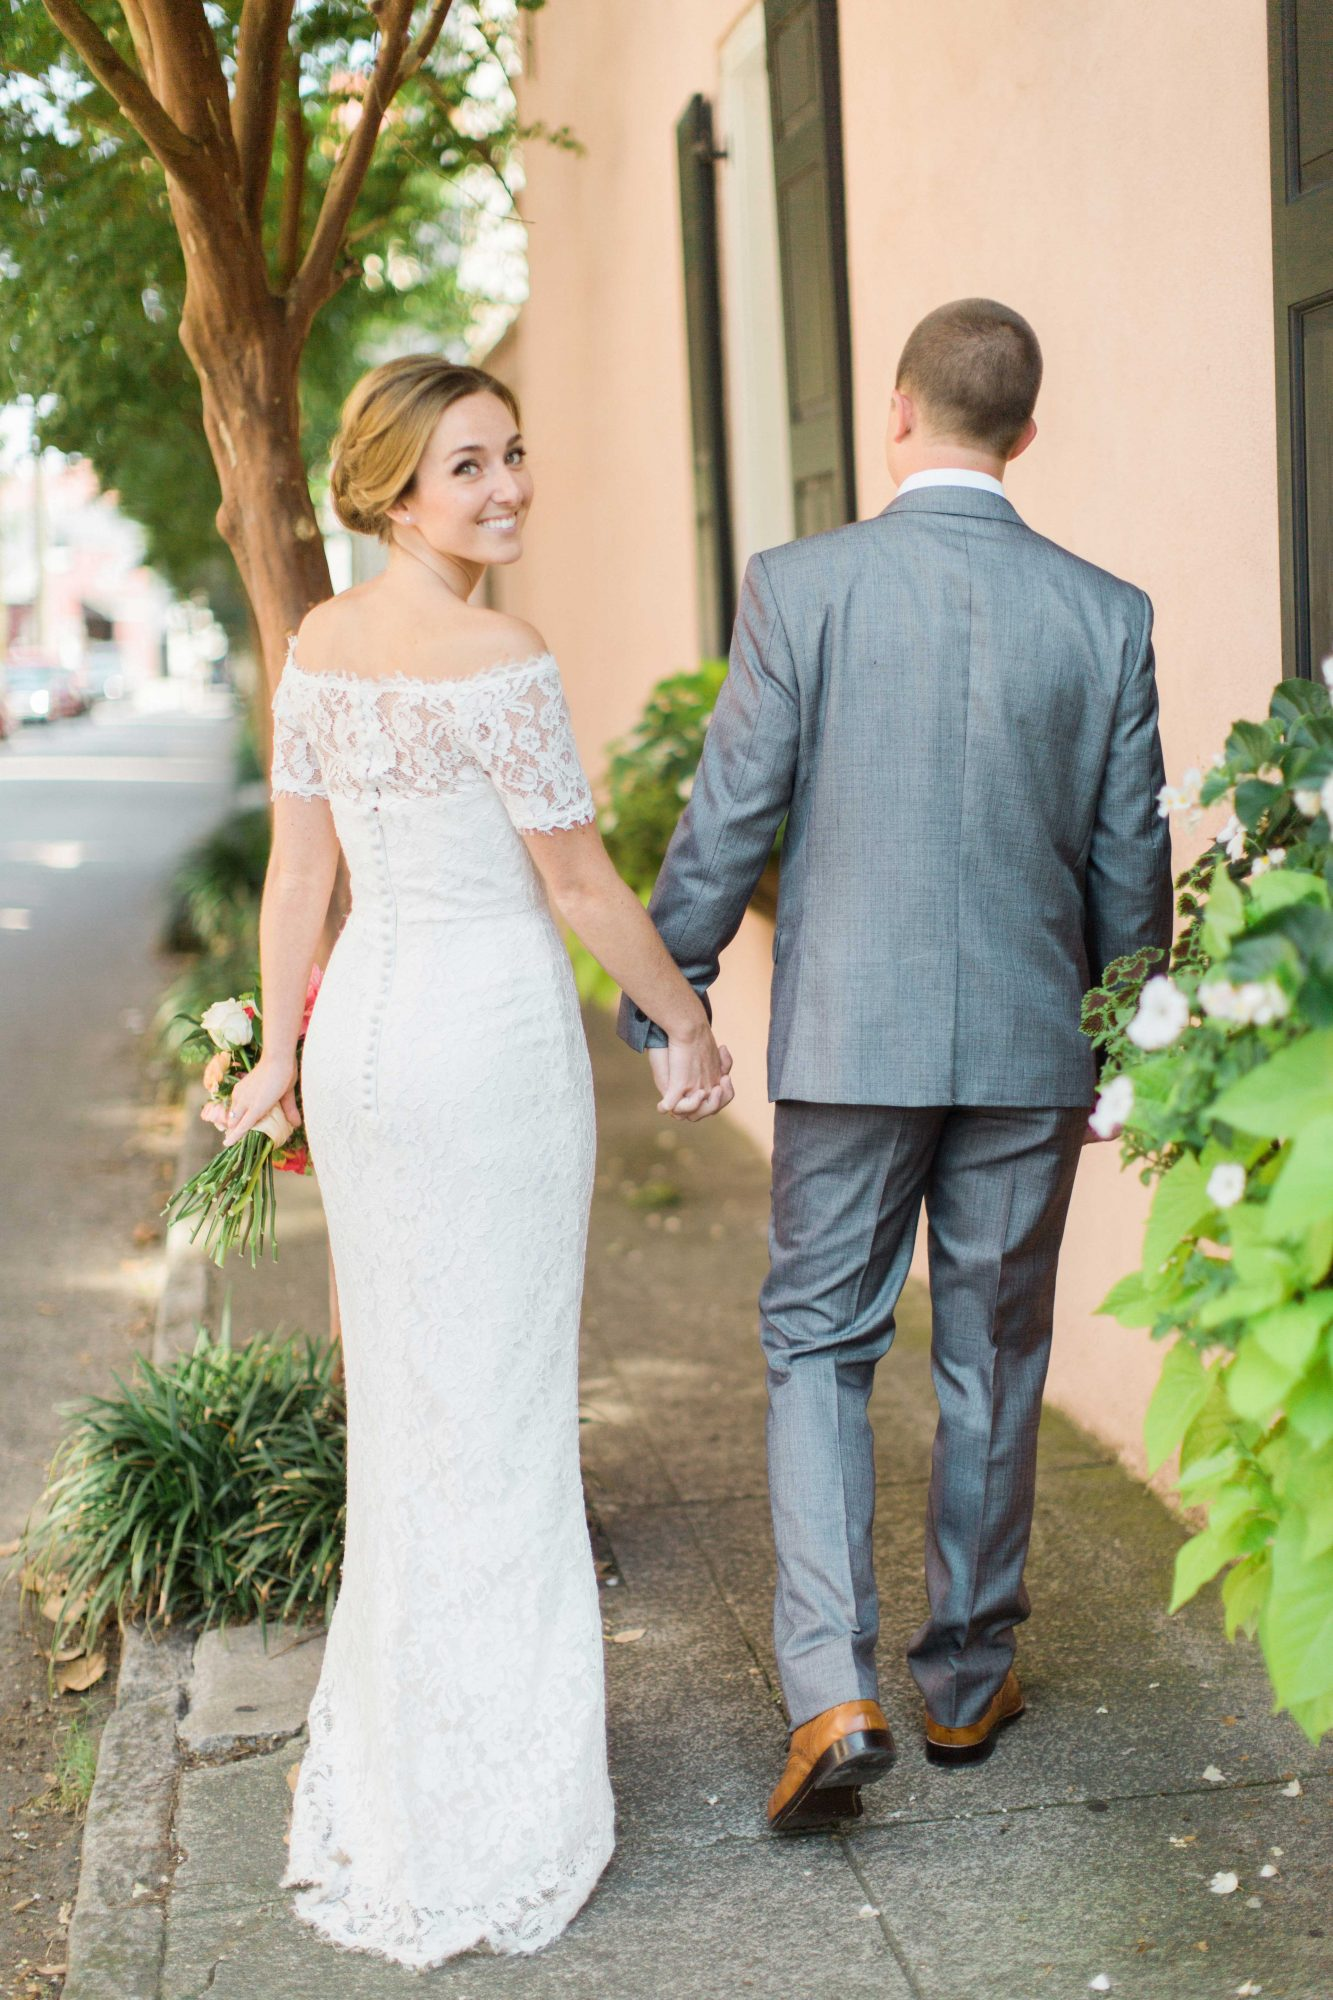 off the shoulder wedding dresses rachel red photography